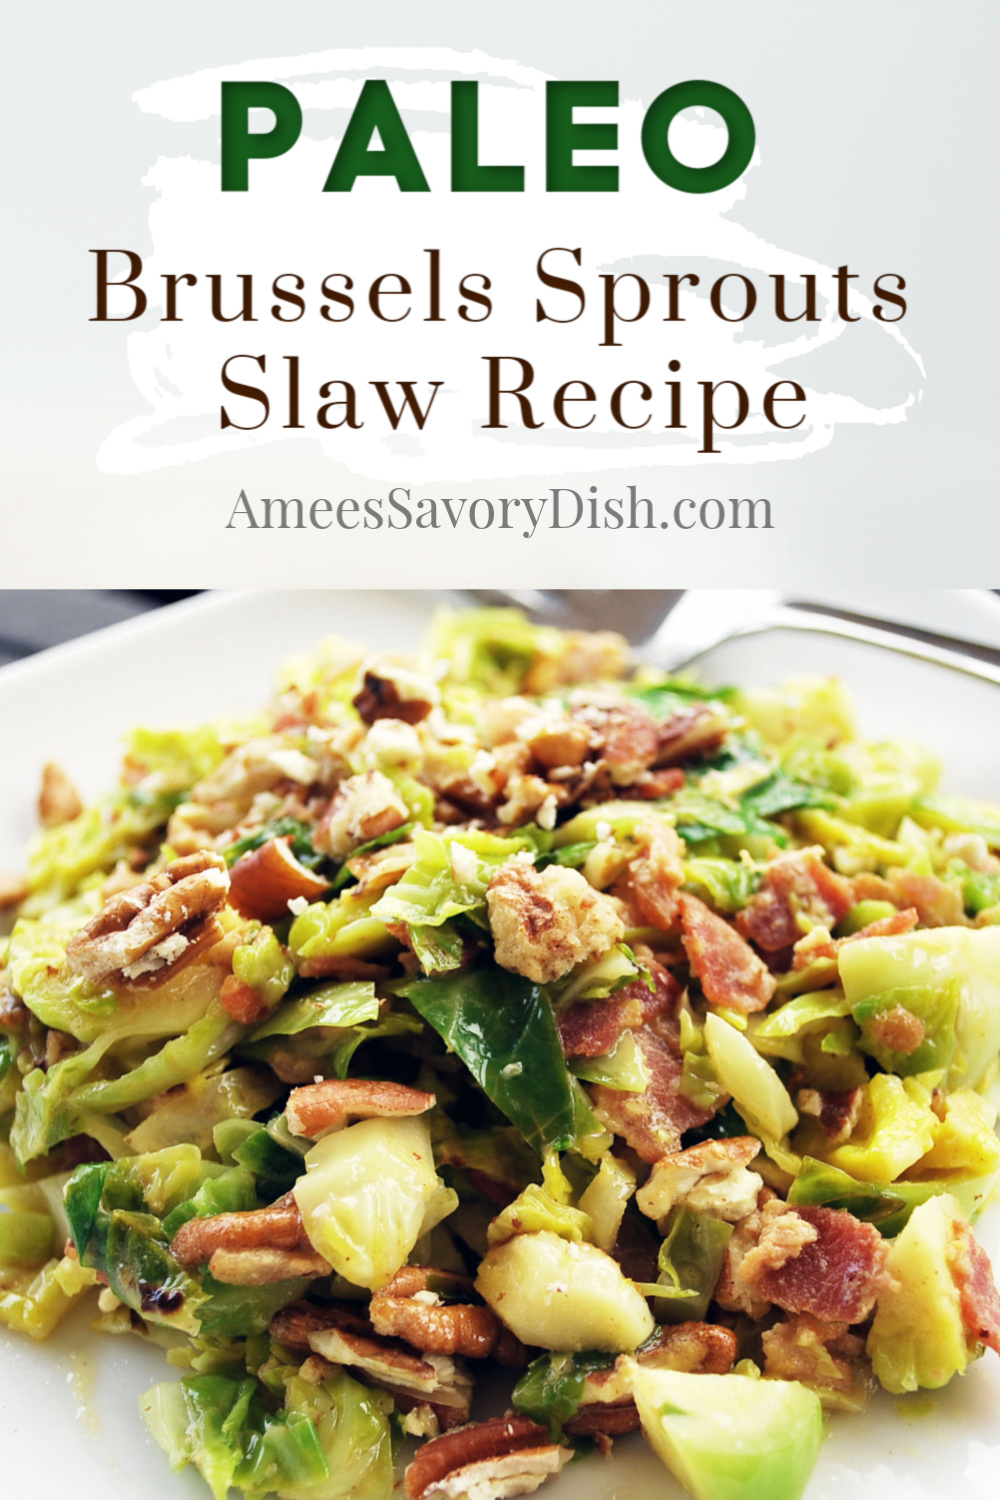 Brussels sprouts slaw is a delicious and healthy side dish, and a great way to enjoy eating Brussels sprouts if you think you're not a fan. Even picky eaters love this Brussels sprouts slaw recipe. via @Ameecooks